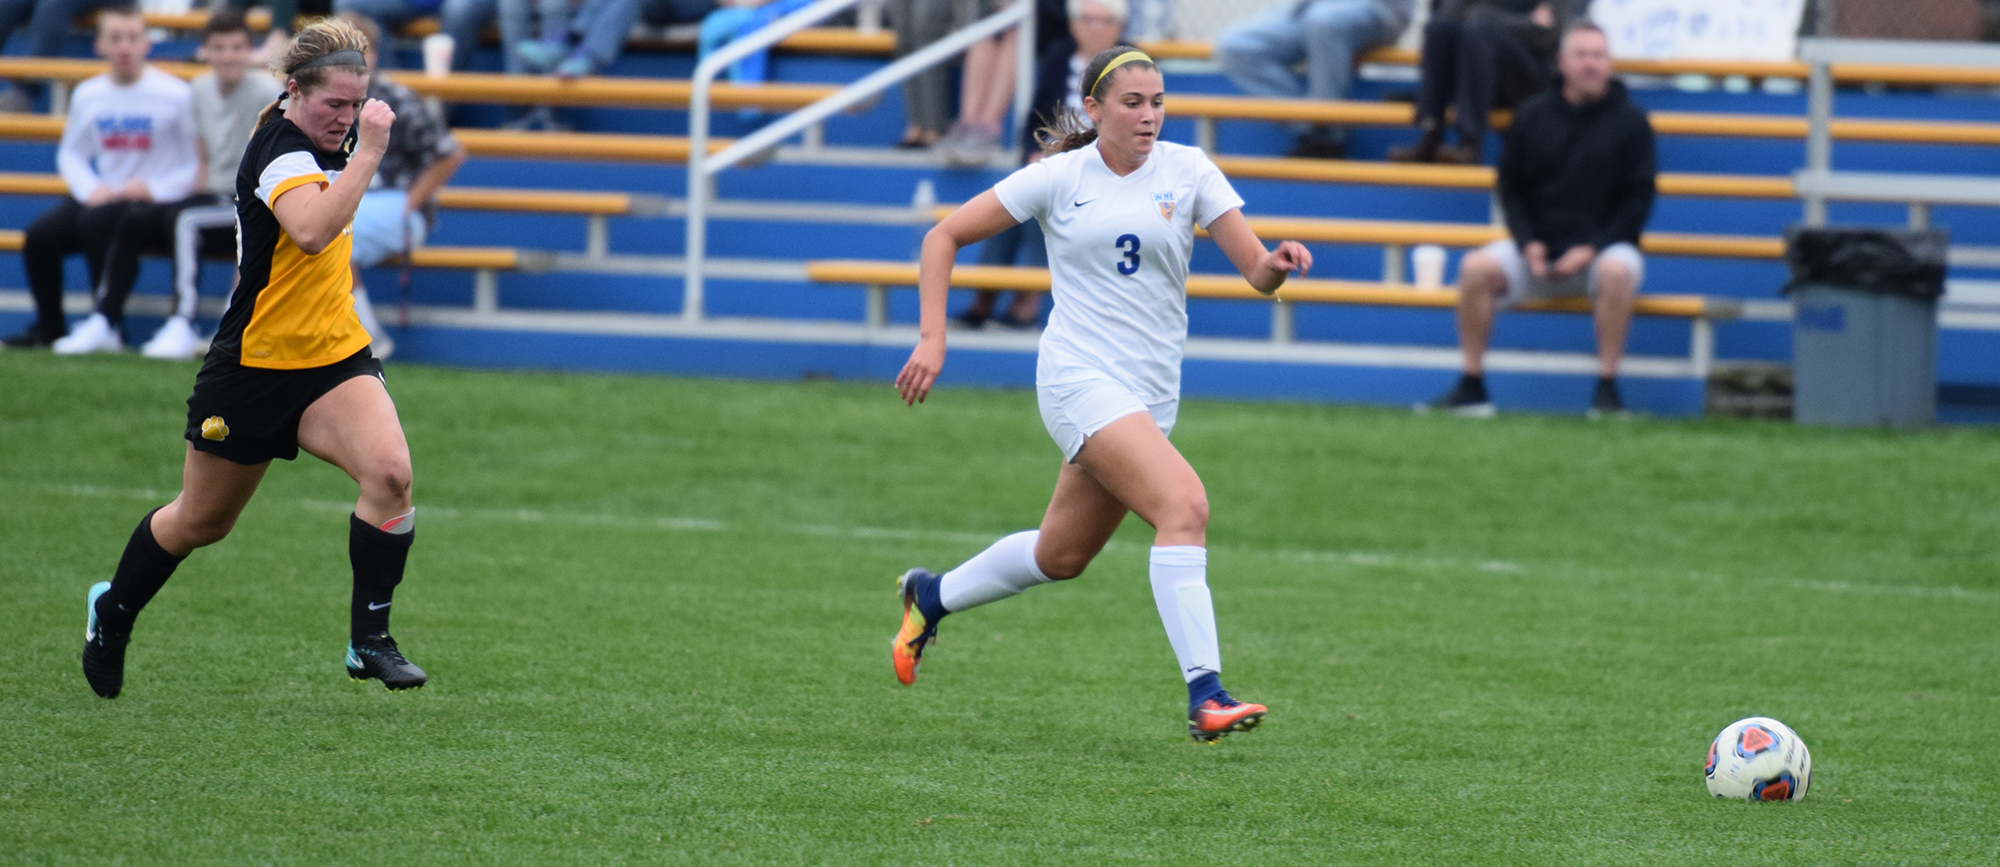 Freshman Morgan Smith scored her team-leading third goal of the season in Wednesday's 2-0 victory over Wentworth.